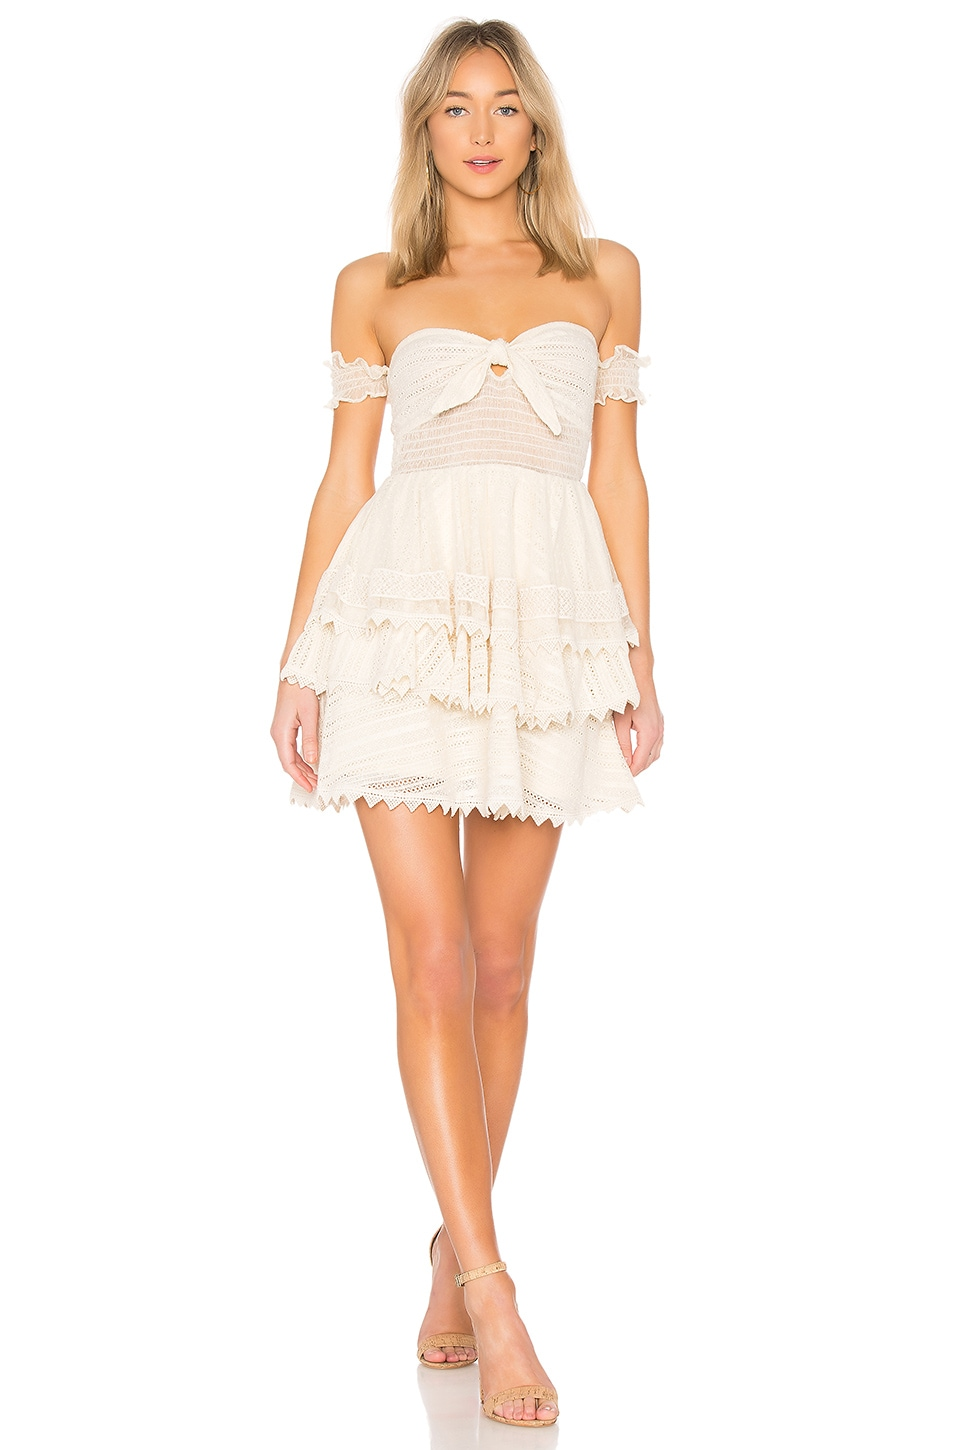 House of Harlow 1960 x REVOLVE Gaines Dress in Natural